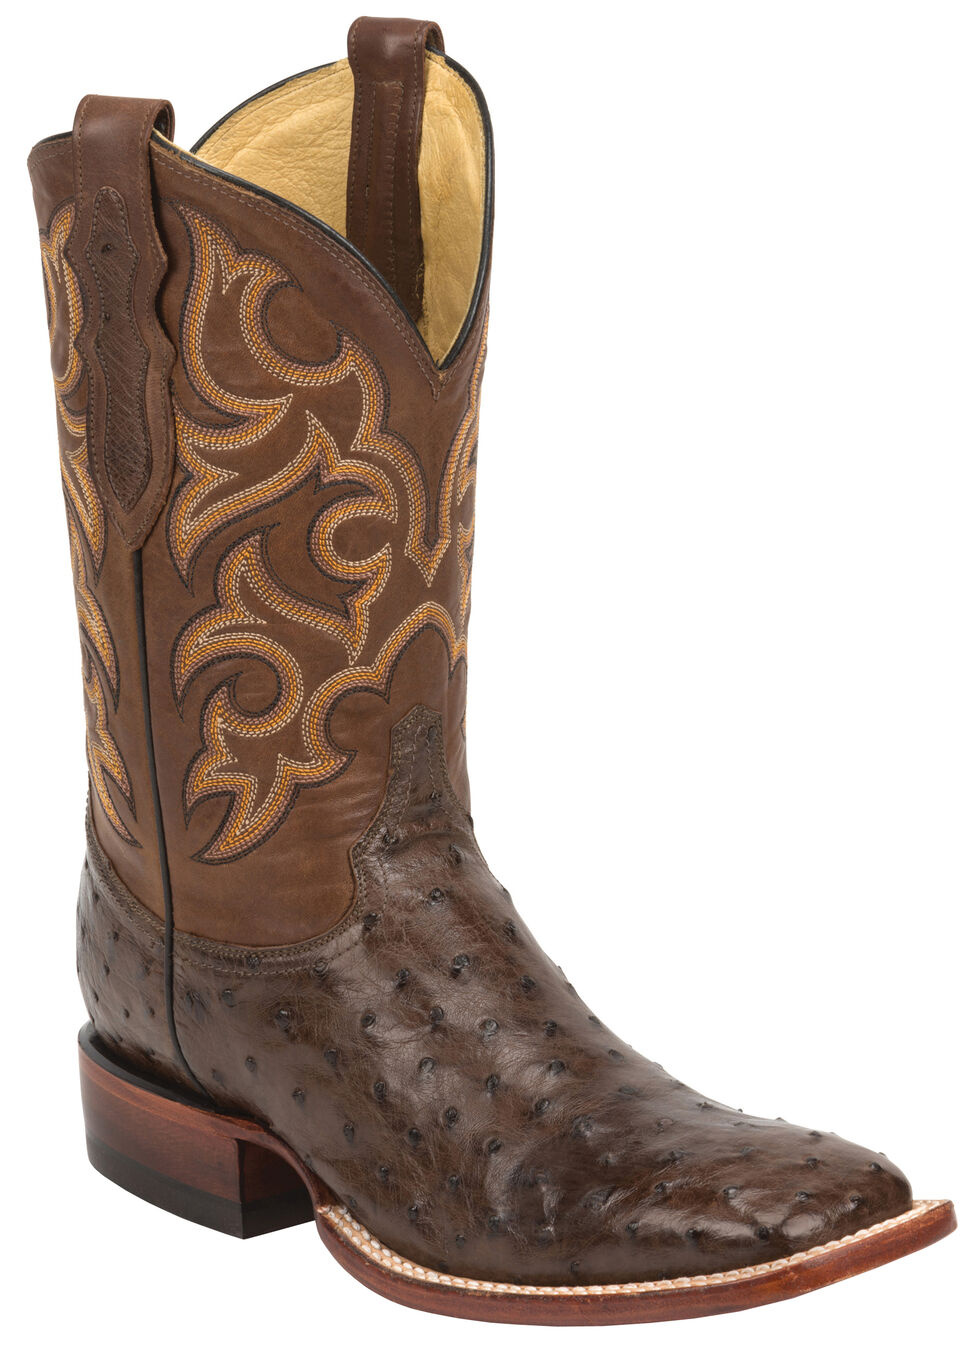 Justin Tobacco Brown Full Quill Ostrich Cowboy Boots - Square Toe , Tobacco, hi-res